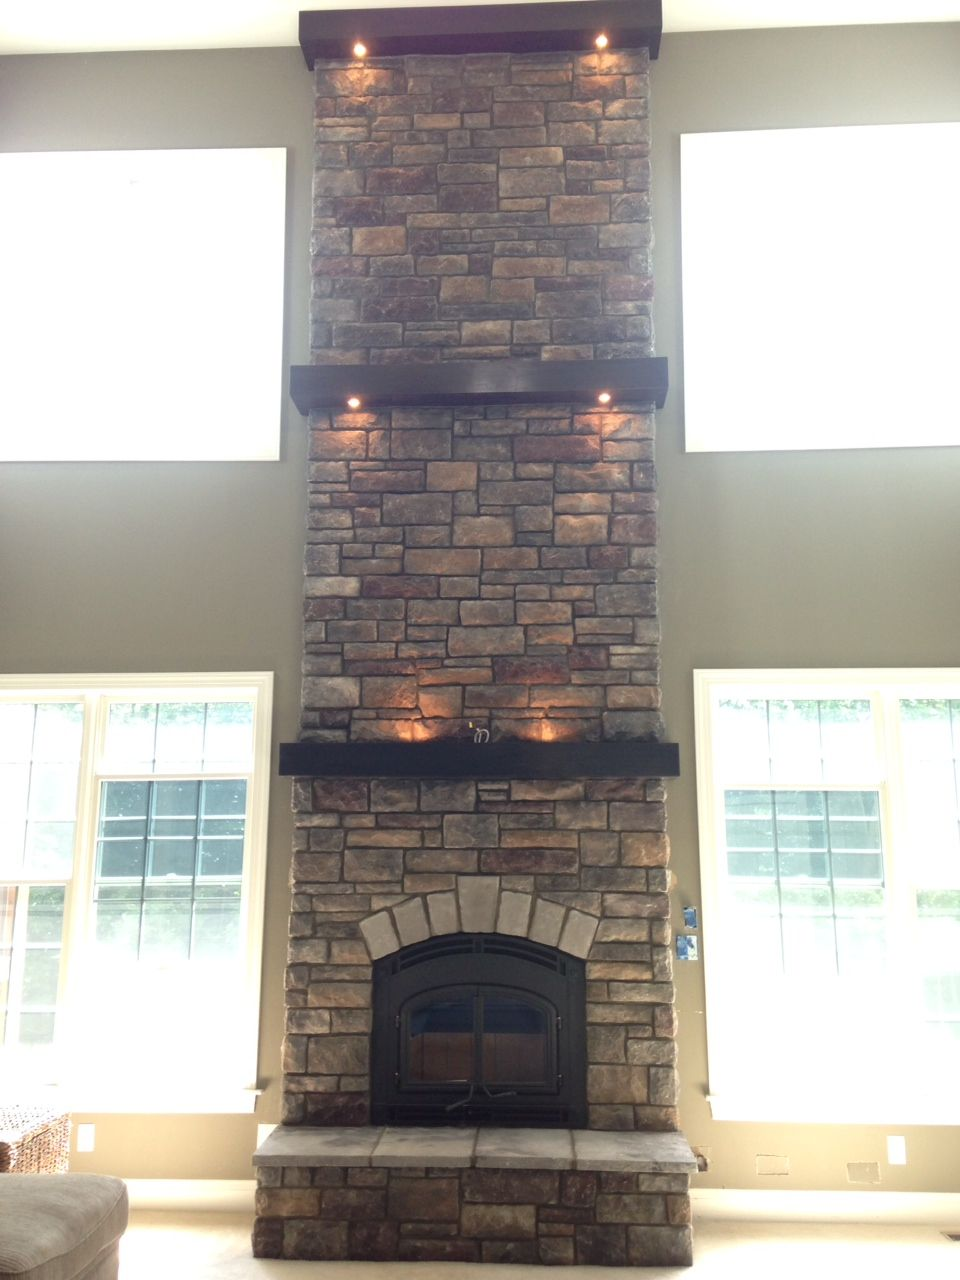 Cultured stone fireplace surround - Chardonnay Limestone By Boral Cultured Stone With Three Wood Mantels With Built In Lighting